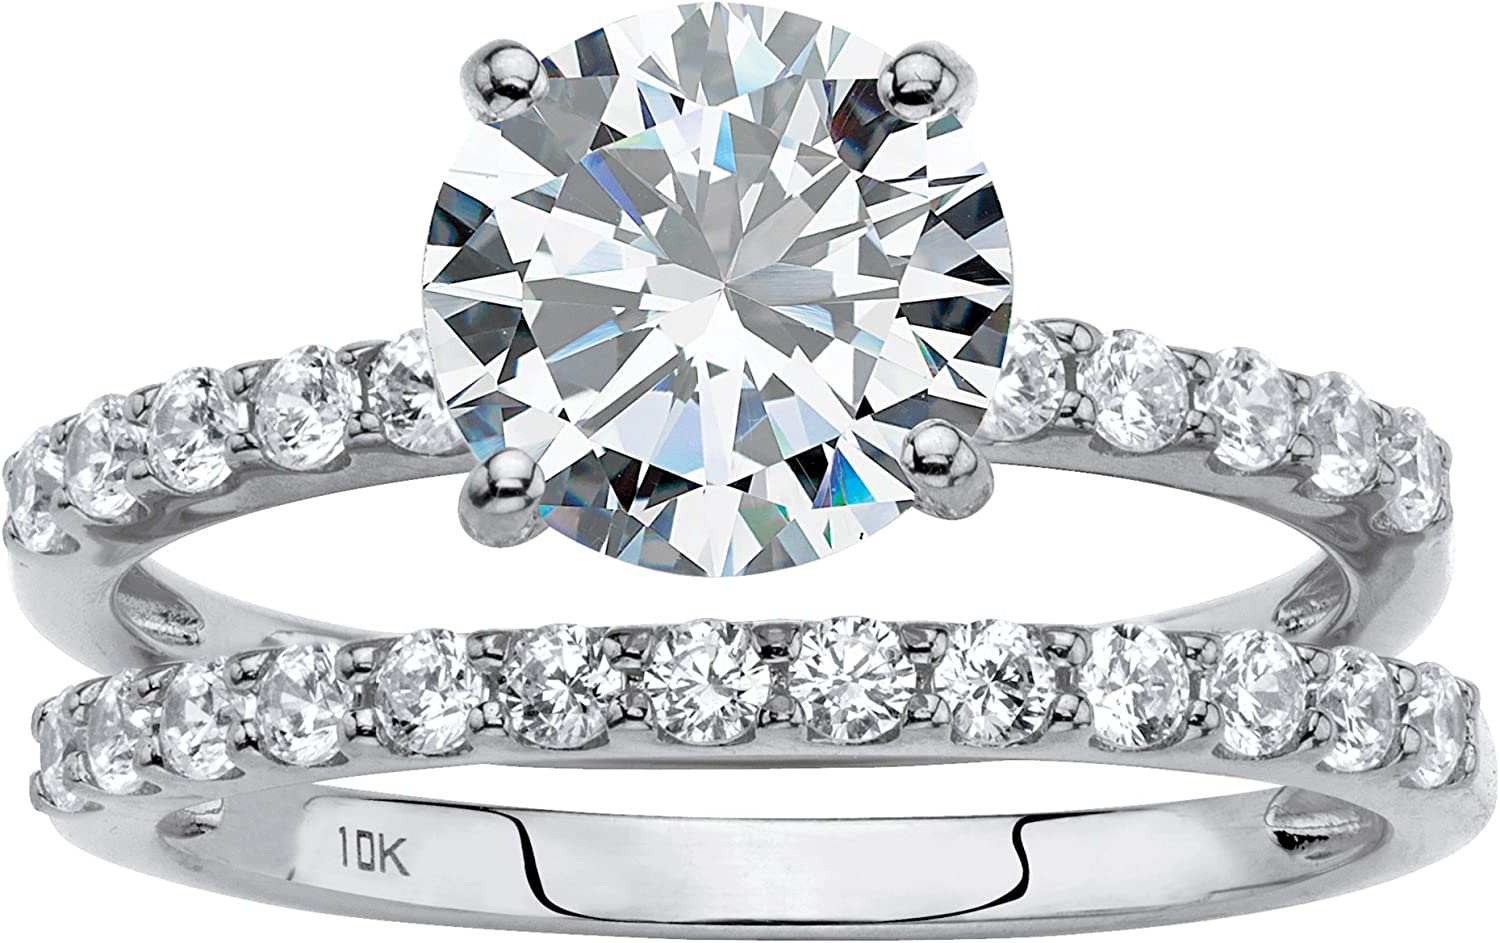 10K Solid White Gold Round Cubic Zirconia 2 Piece Bridal Ring Set Size 8